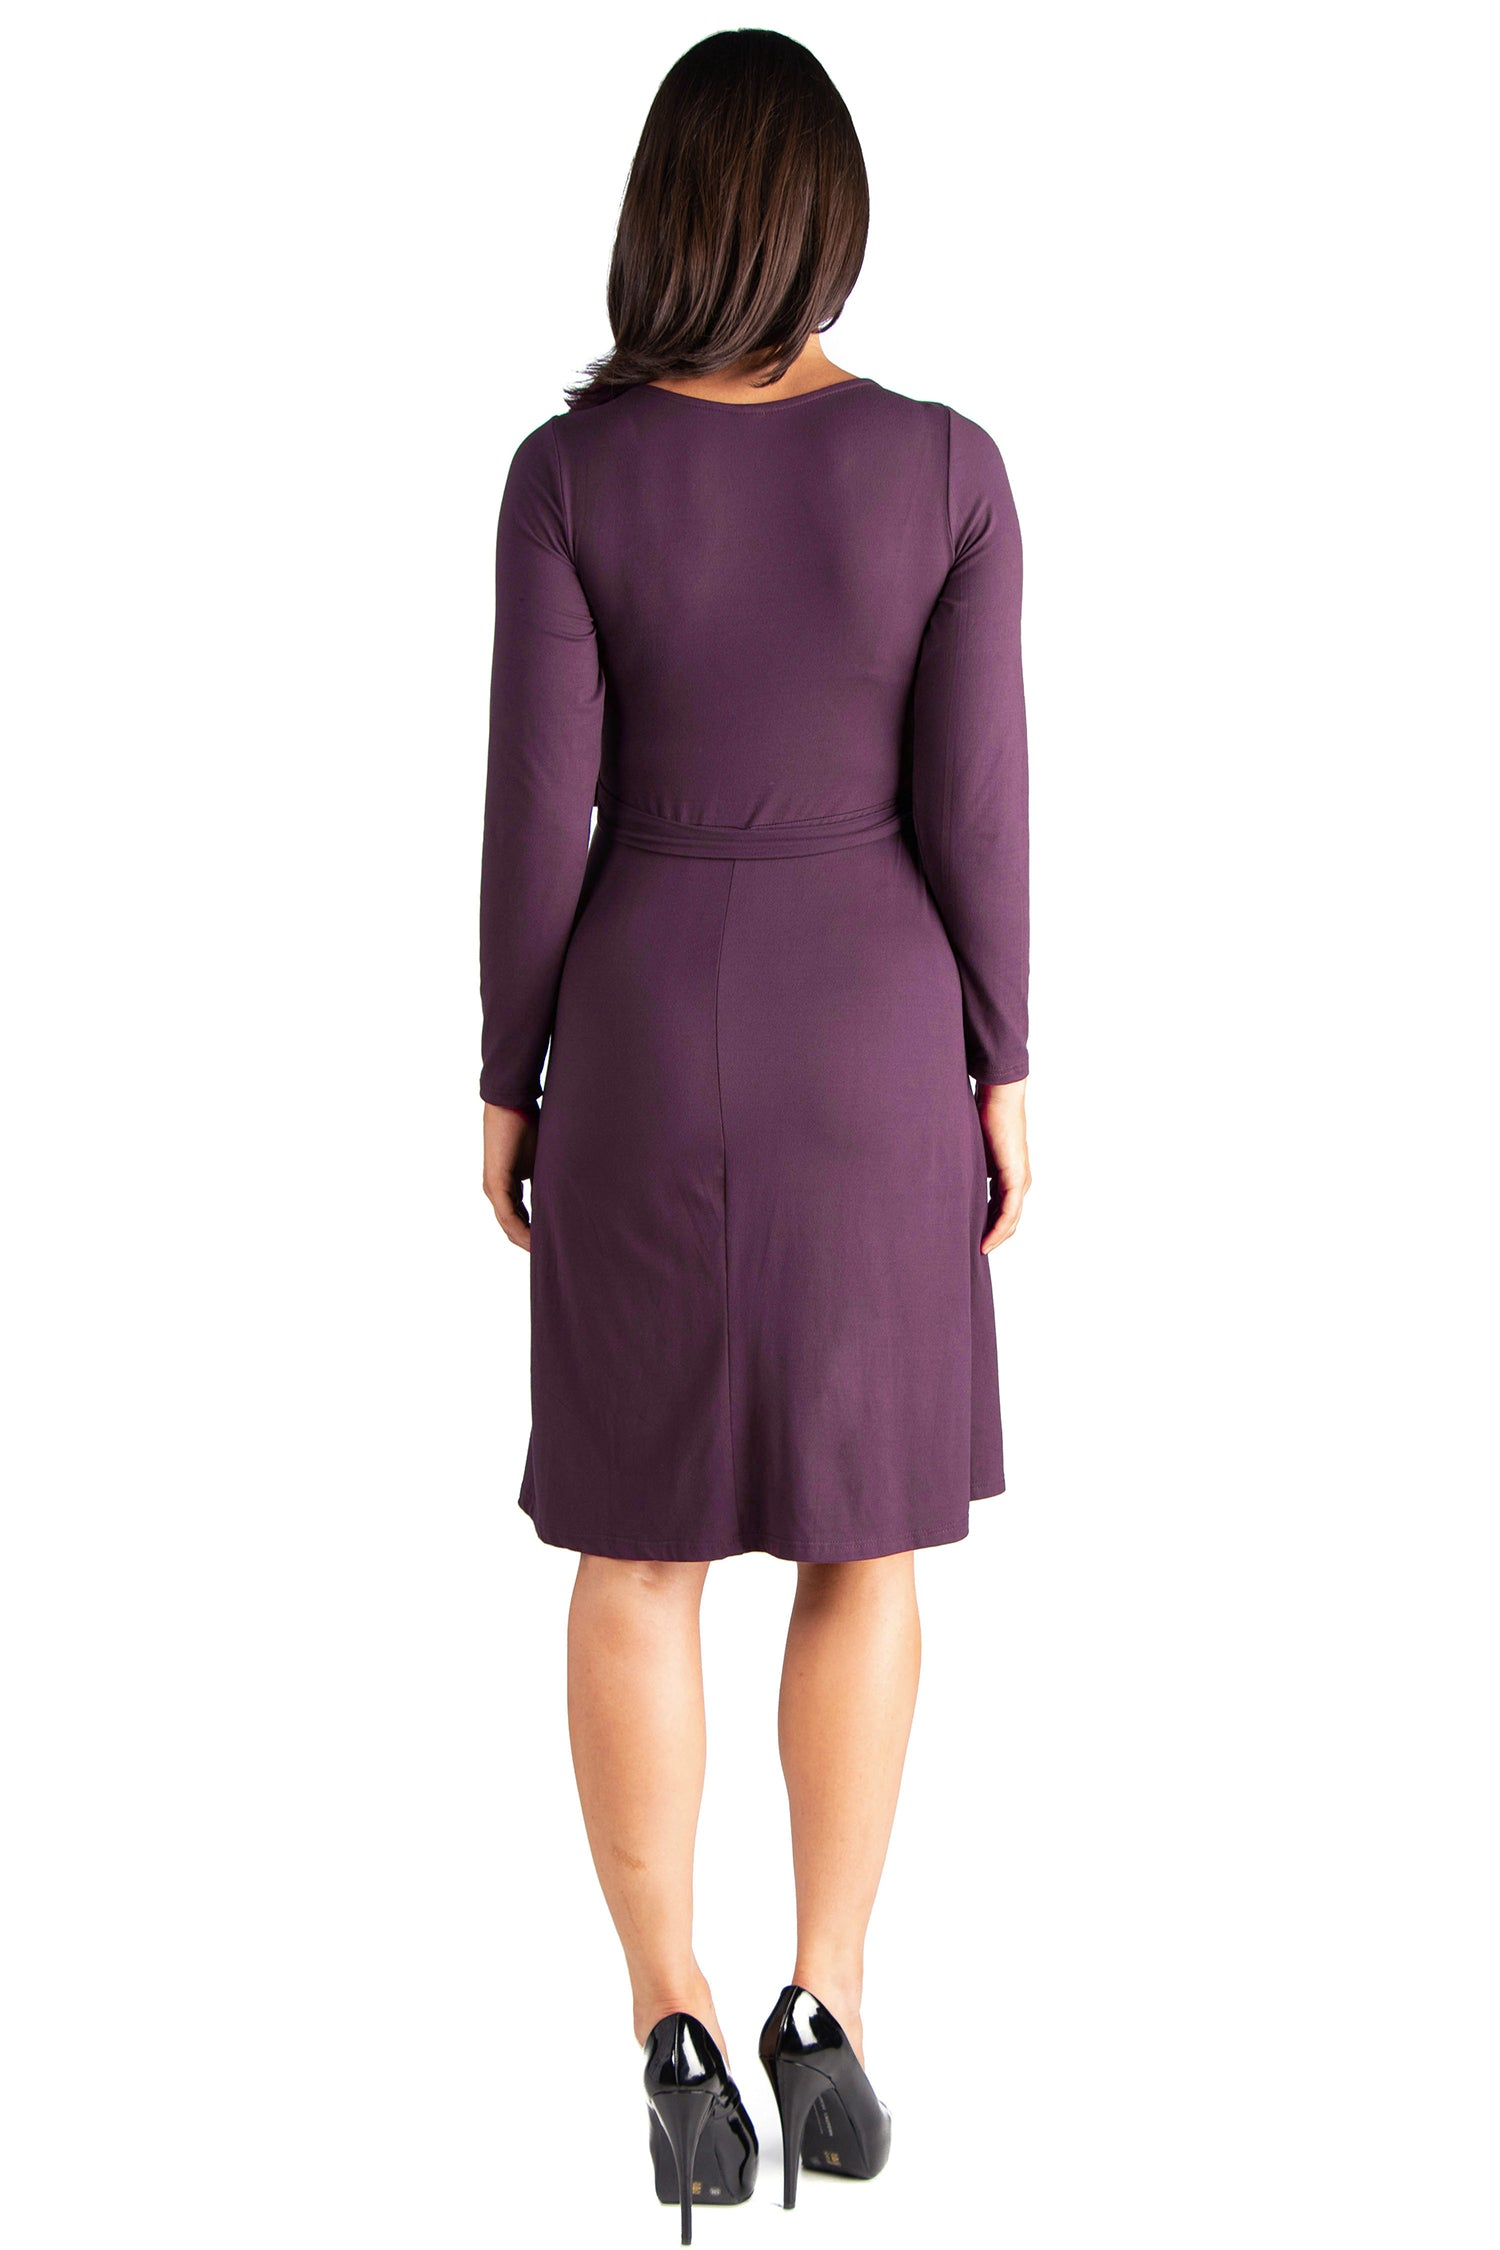 24seven Comfort Apparel Chic V-Neck Long Sleeve Belted Maternity Dress-DRESSES-24Seven Comfort Apparel-PURPLE-S-24/7 Comfort Apparel